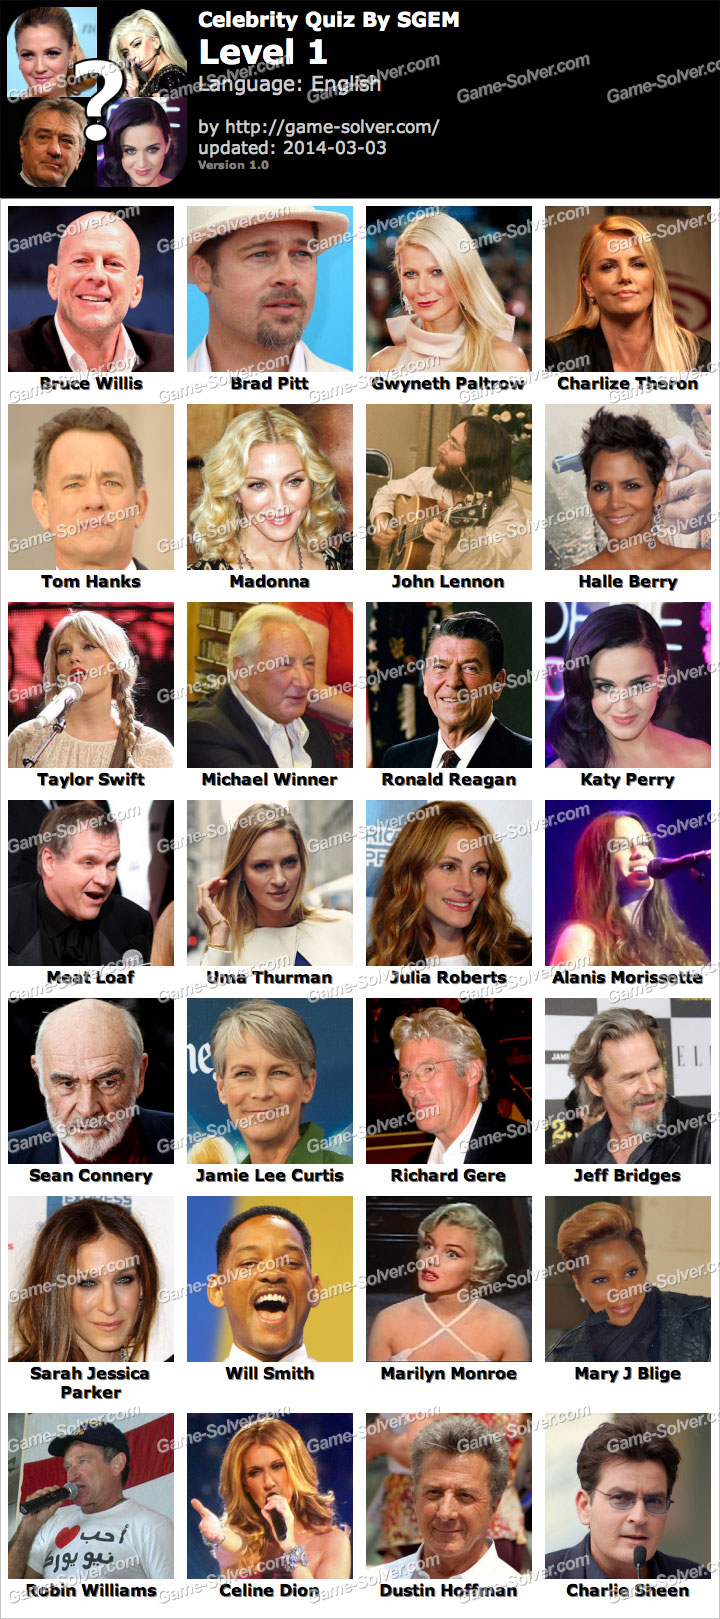 Crossword Quiz Celebrities Level 1 - Answers King